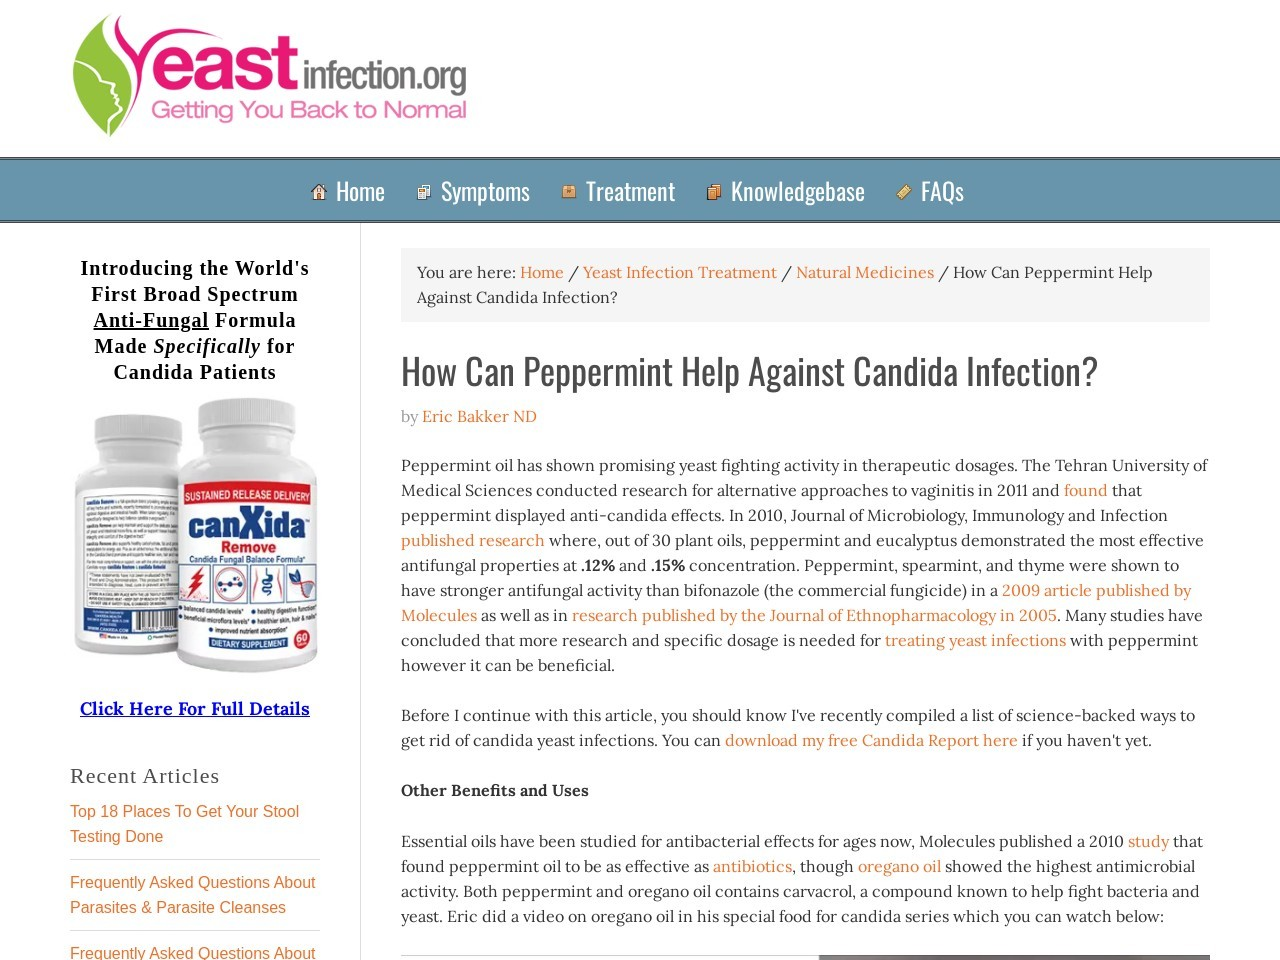 How Can Peppermint Help Against Candida Infection?